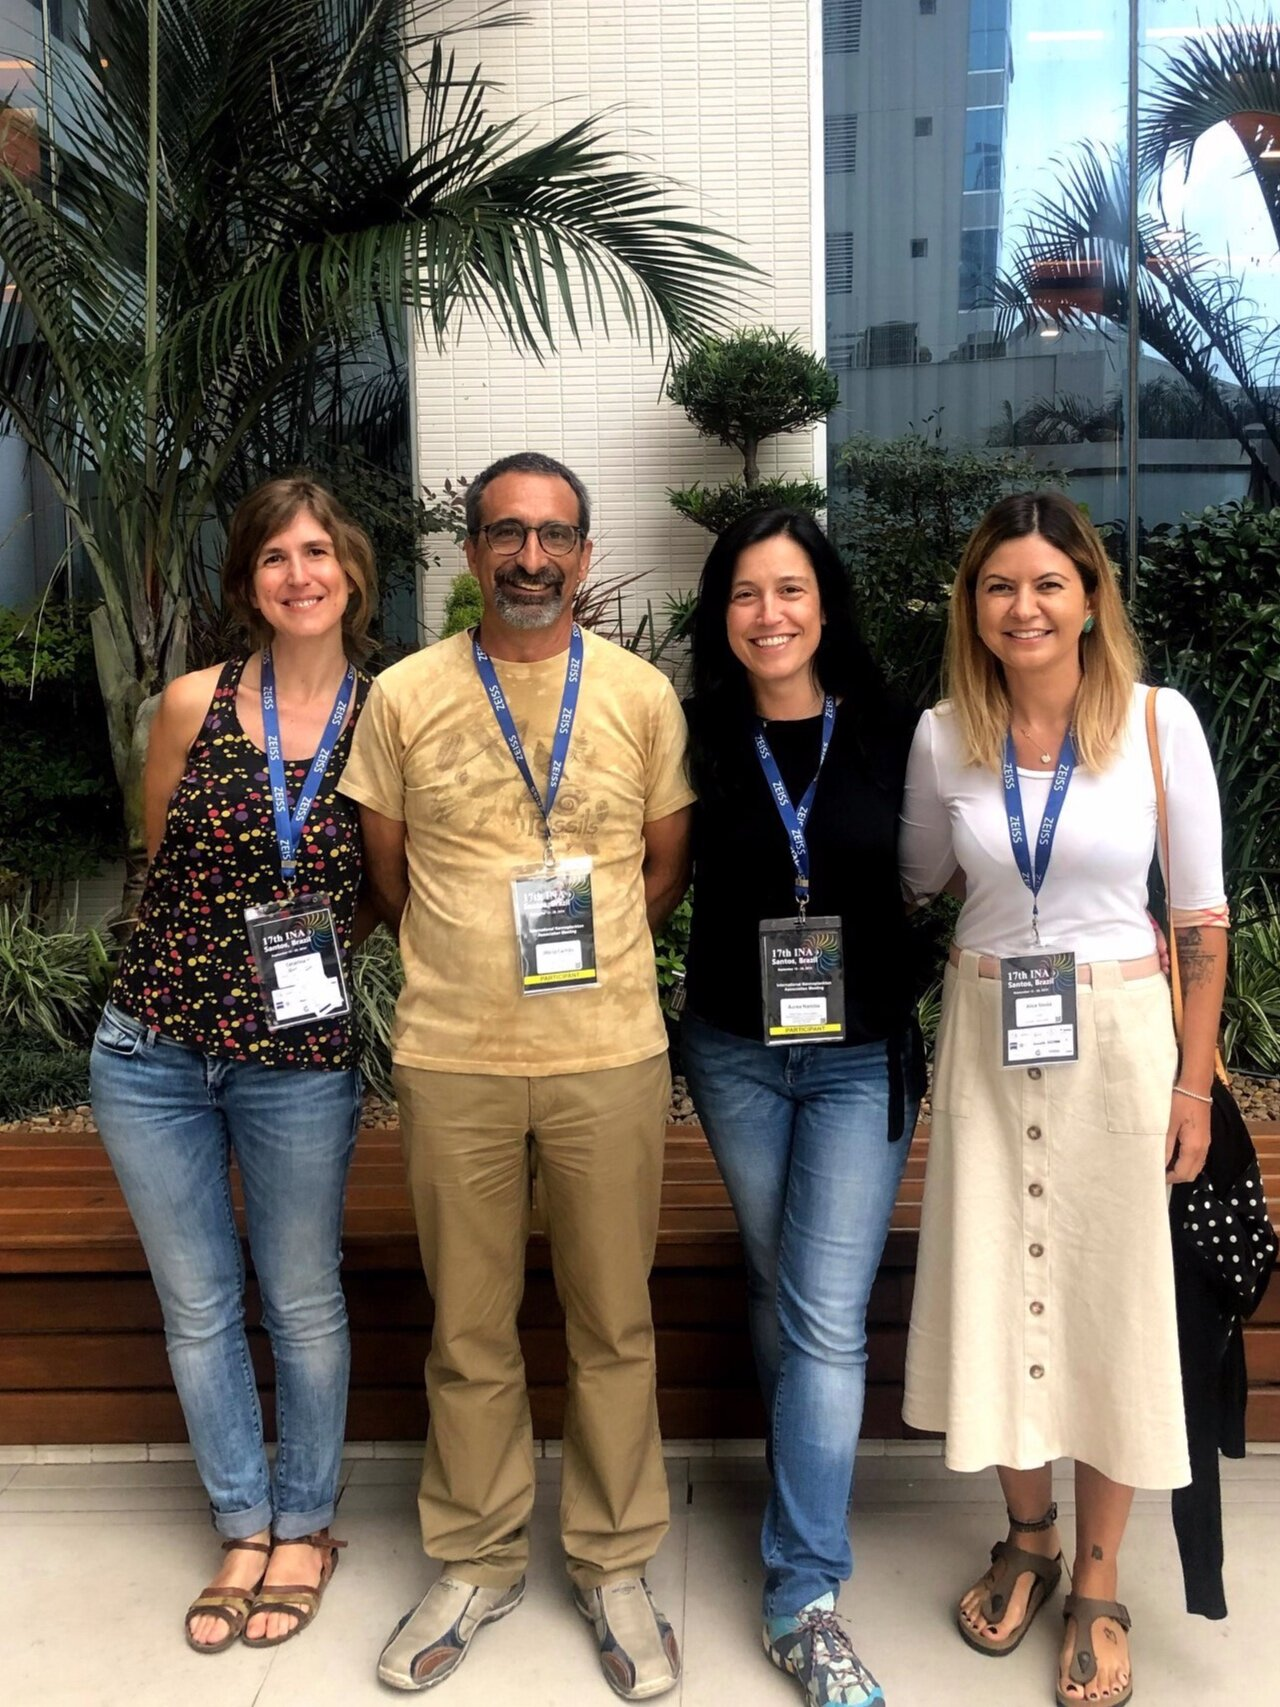 The Nanolab team from the Faculty of Sciences of the University of Lisbon (from left to right): Catarina Guerreiro, Mário Cachão, Áurea Narciso and Alice Ferreira Souza.